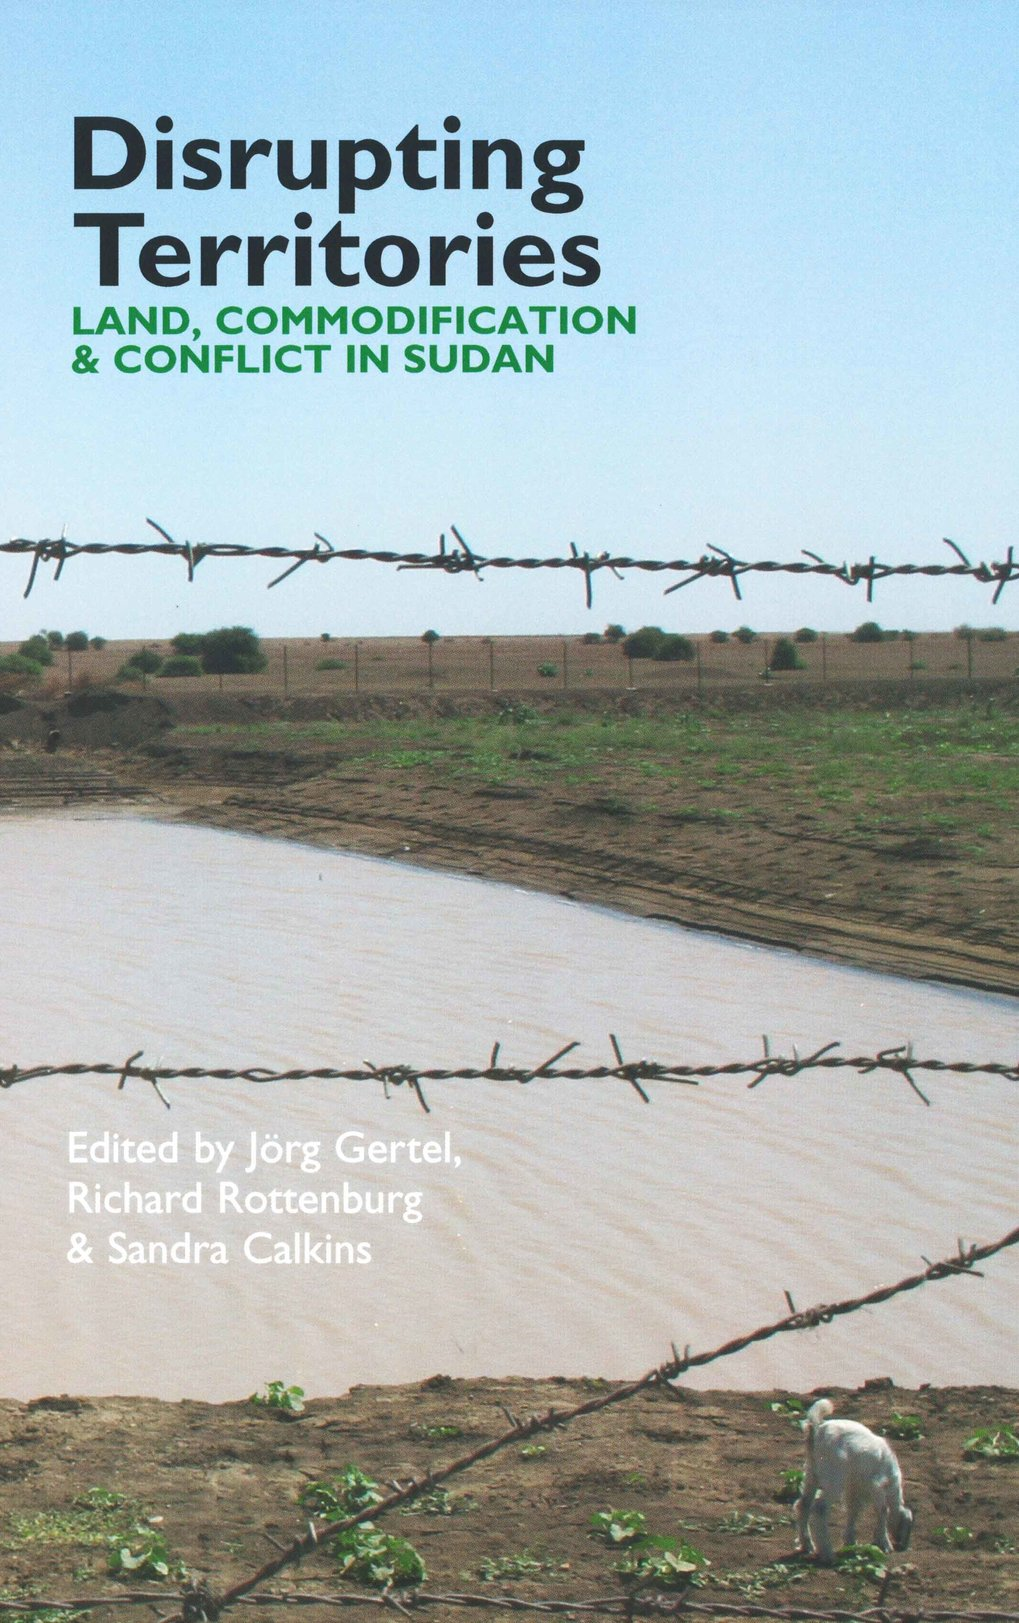 Disrupting Territories. Land, Commodification and Conflict in Sudan